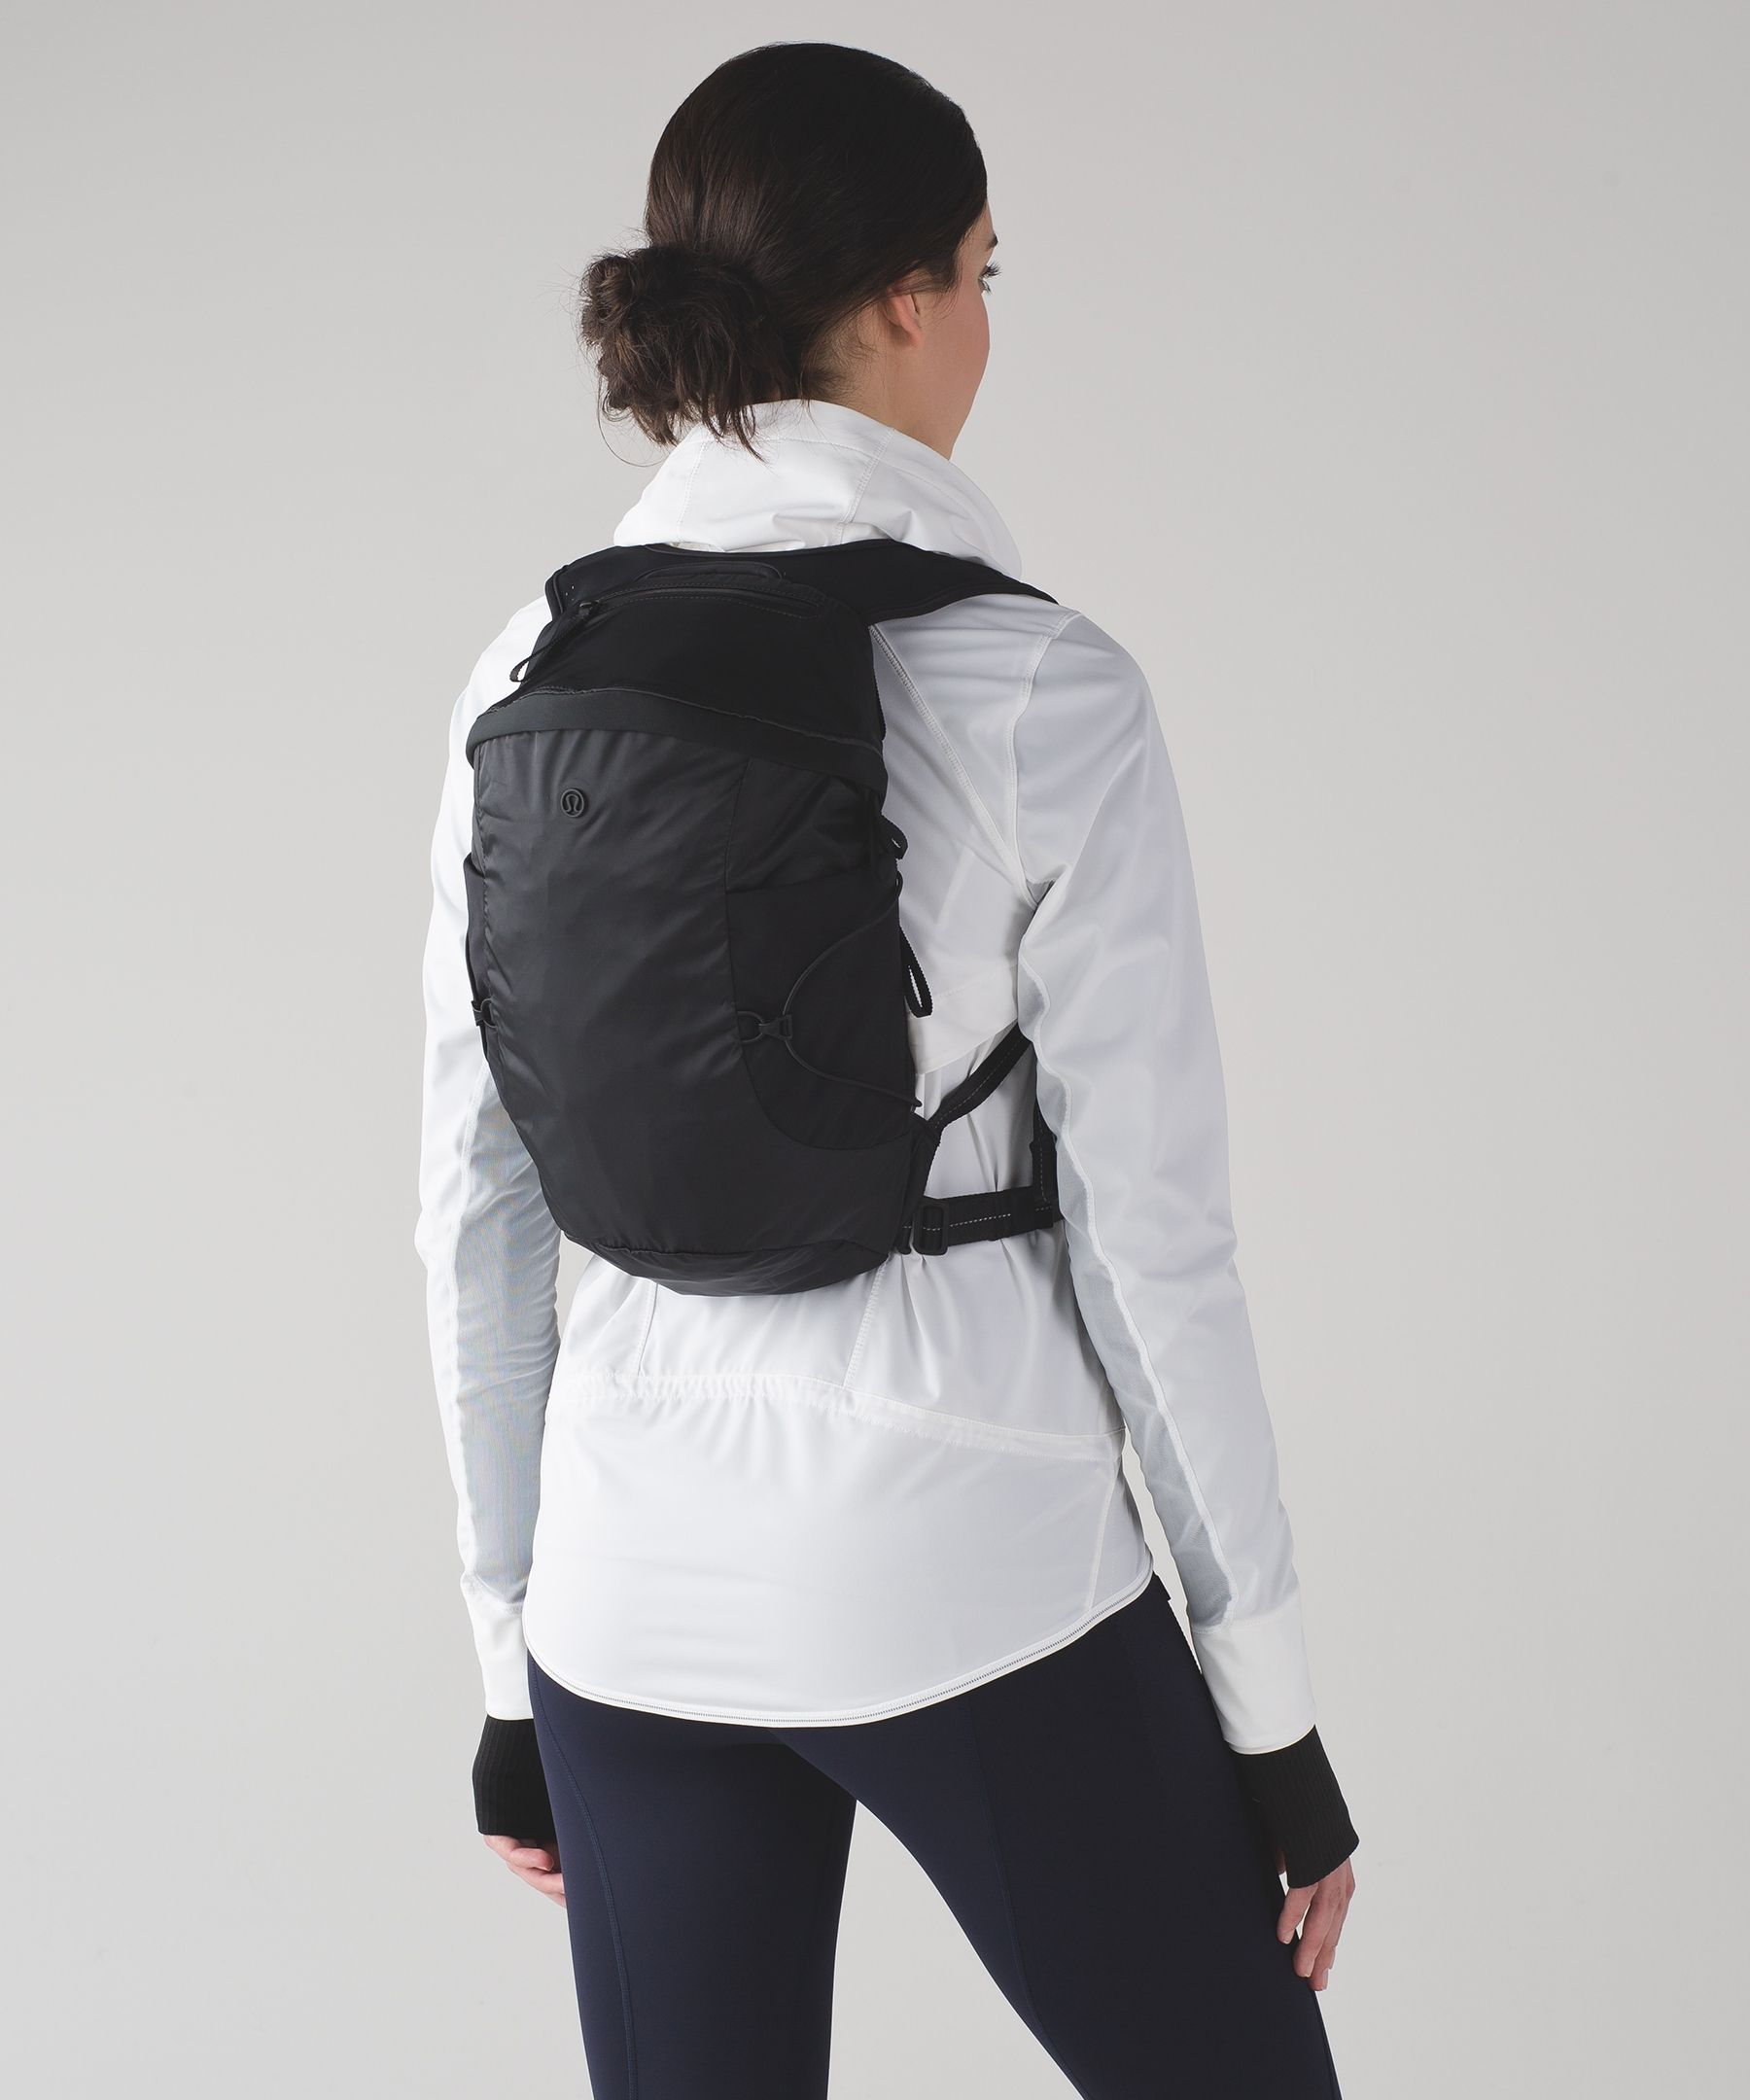 d19872df1be Run All Day Backpack II *13L | Things I would like to have... | Day ...